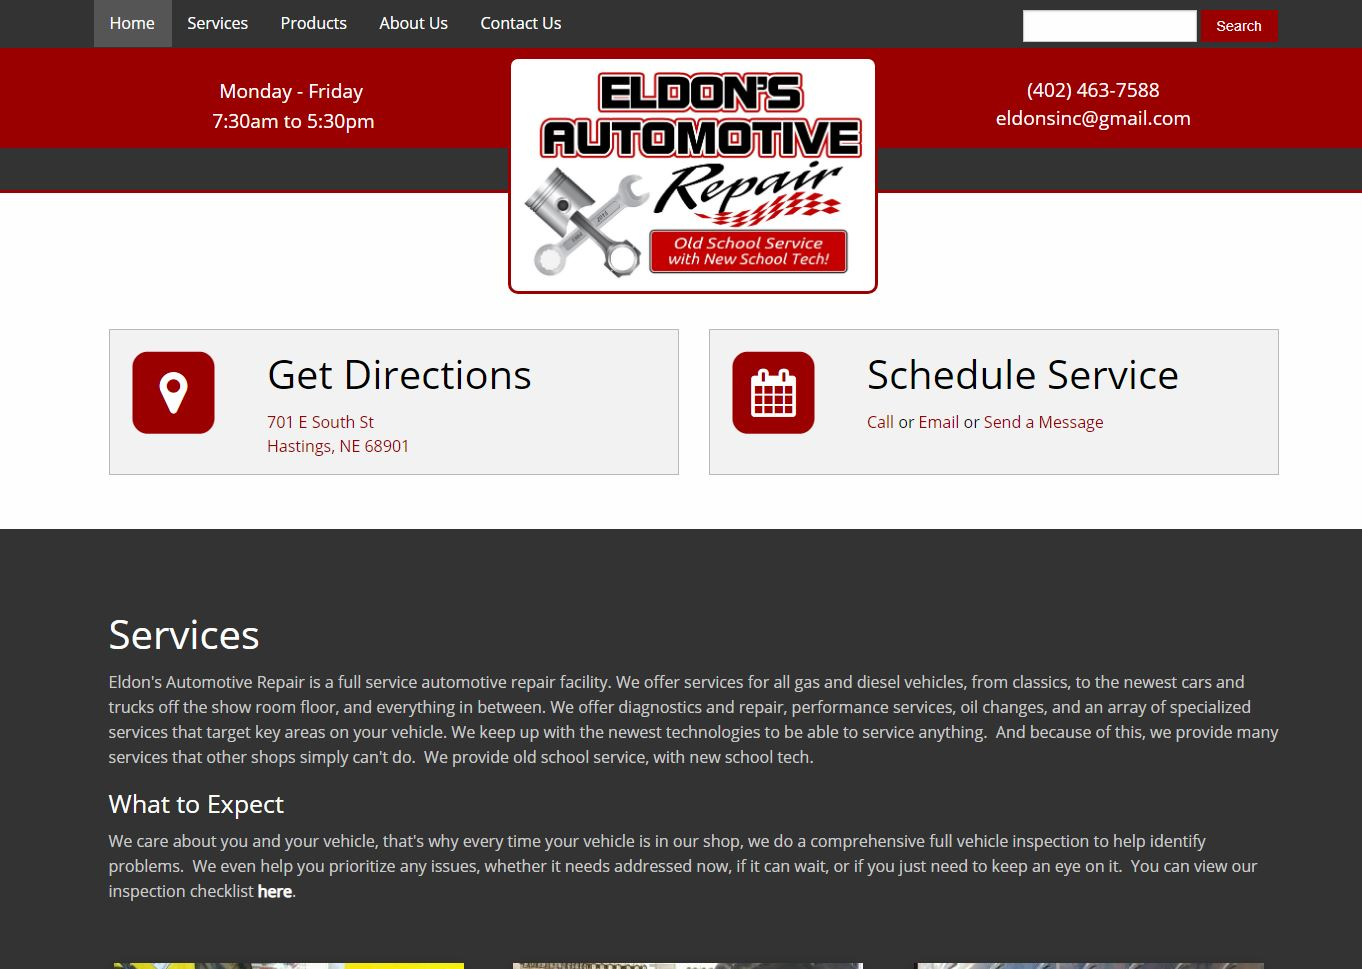 Eldons Automotive Repair | www.eldonsautomotiverepair.com